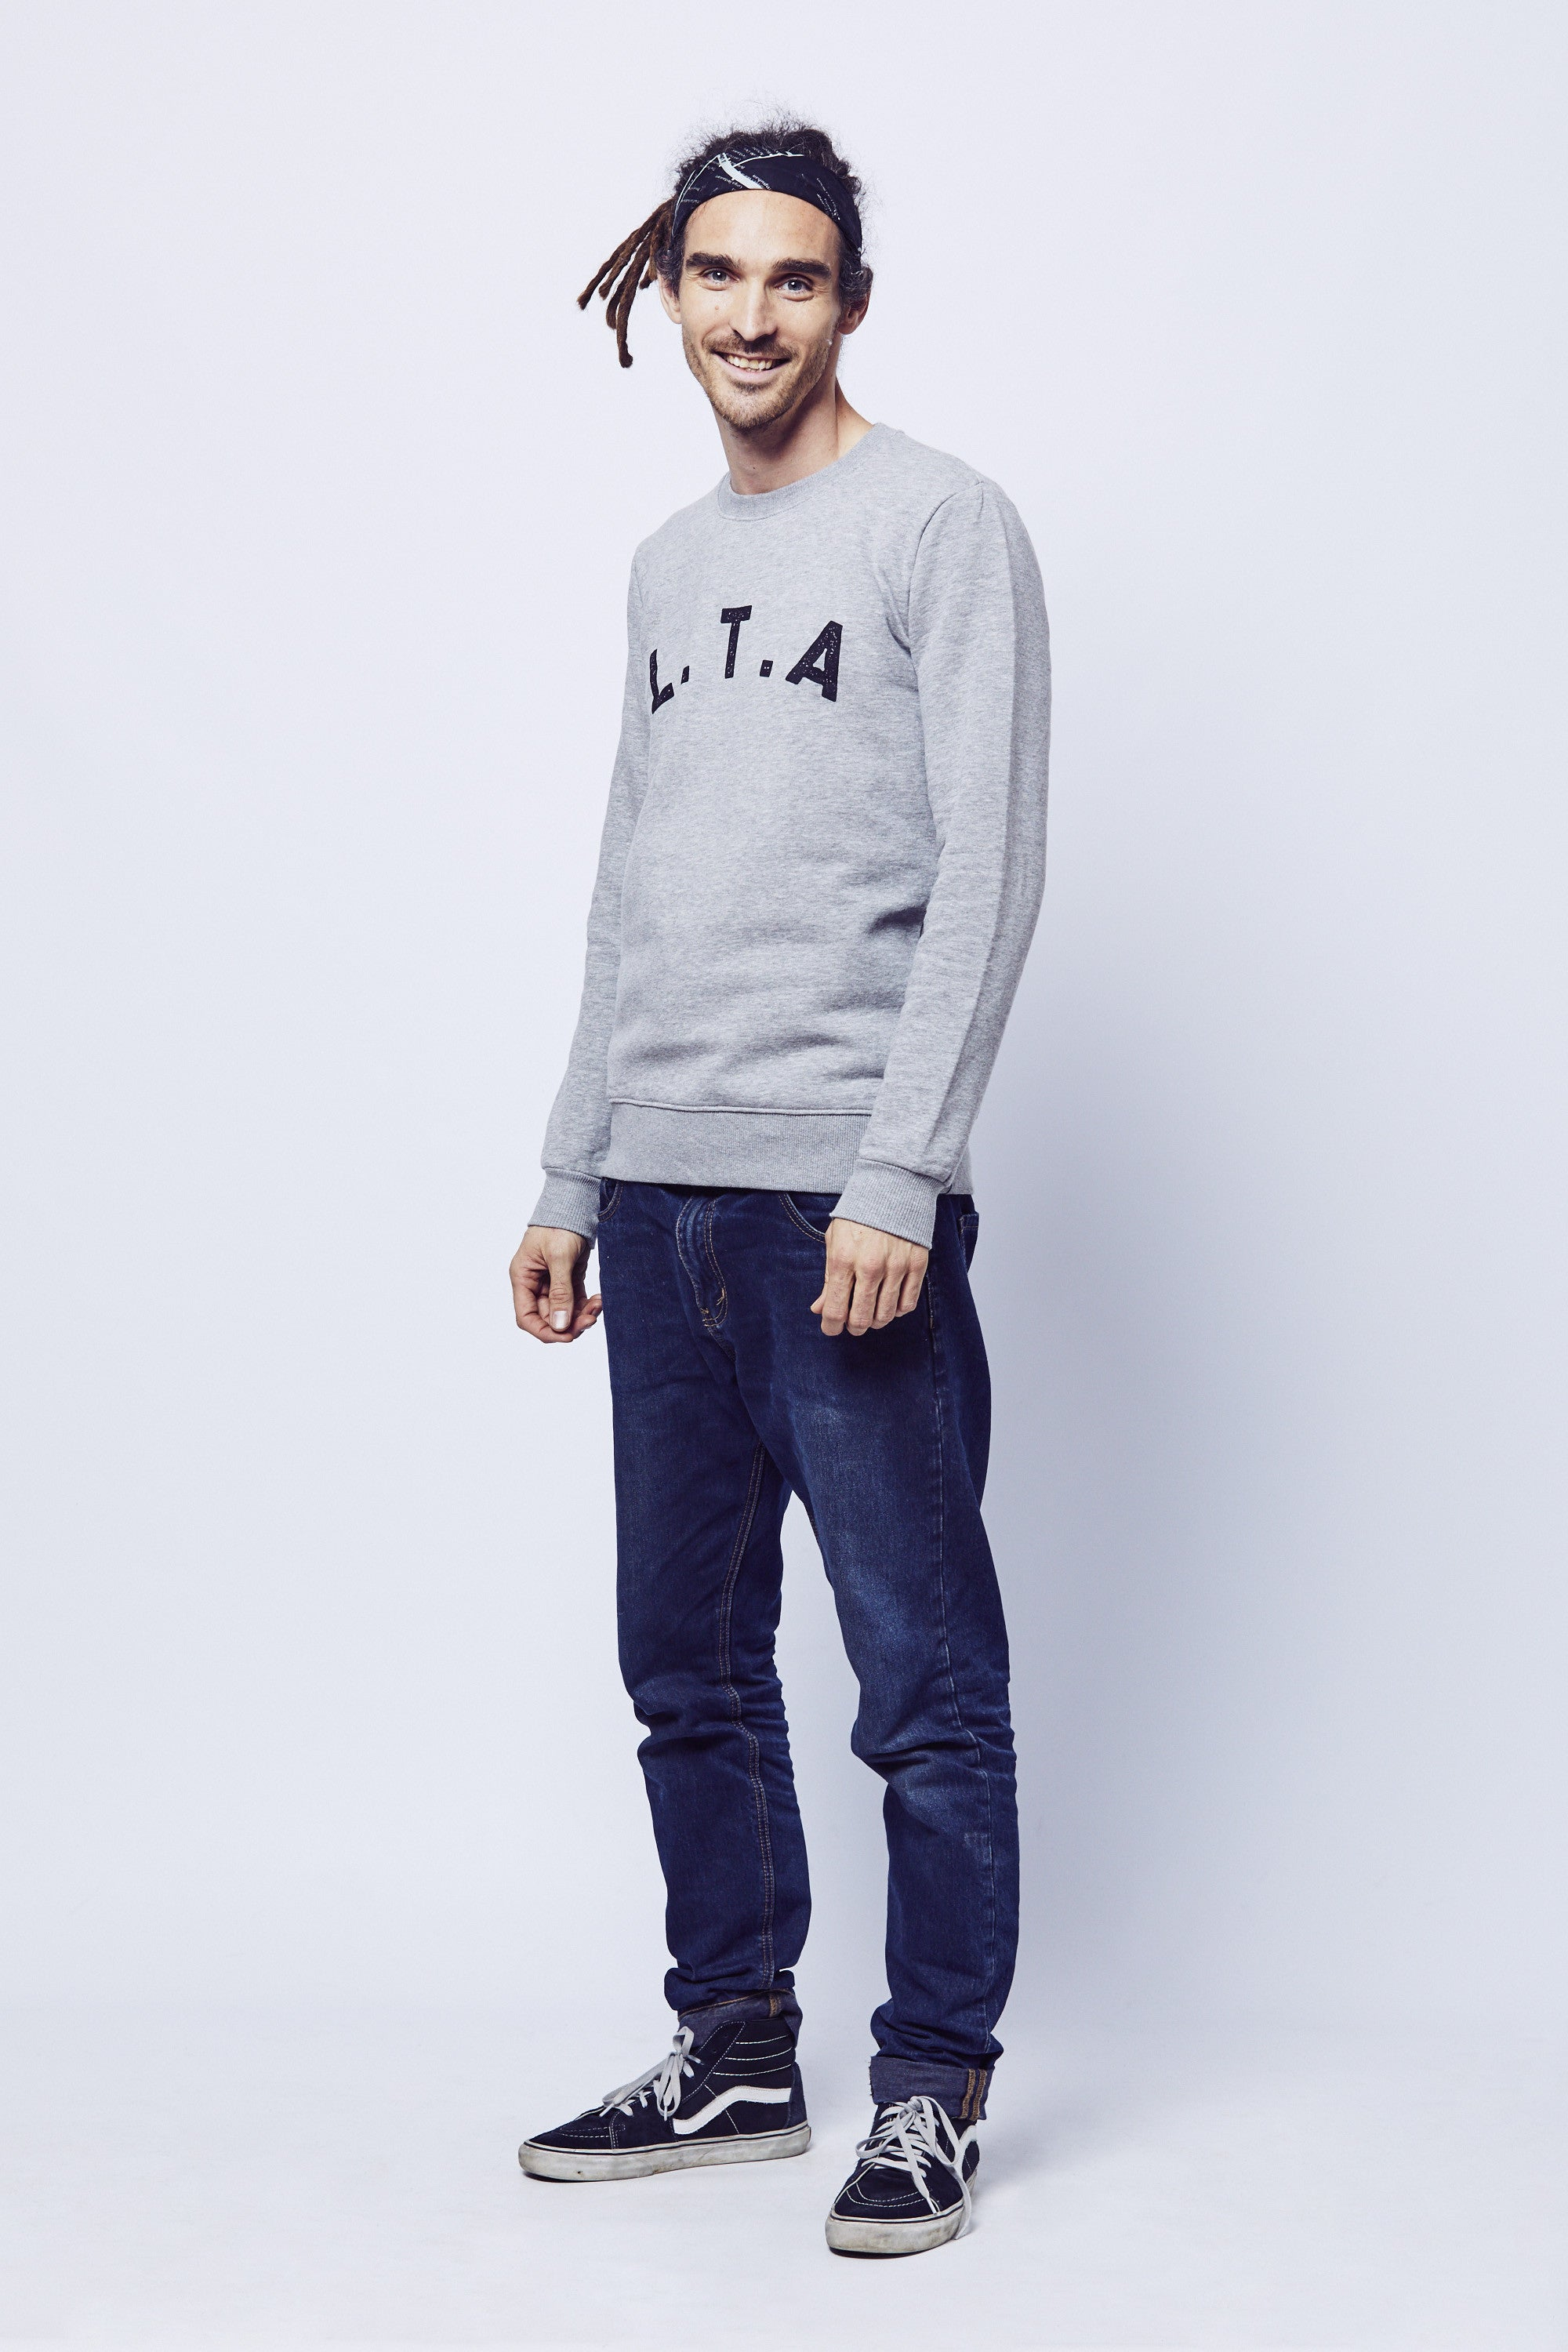 Live The Adventure 'LTA' Sweatshirt - Grey